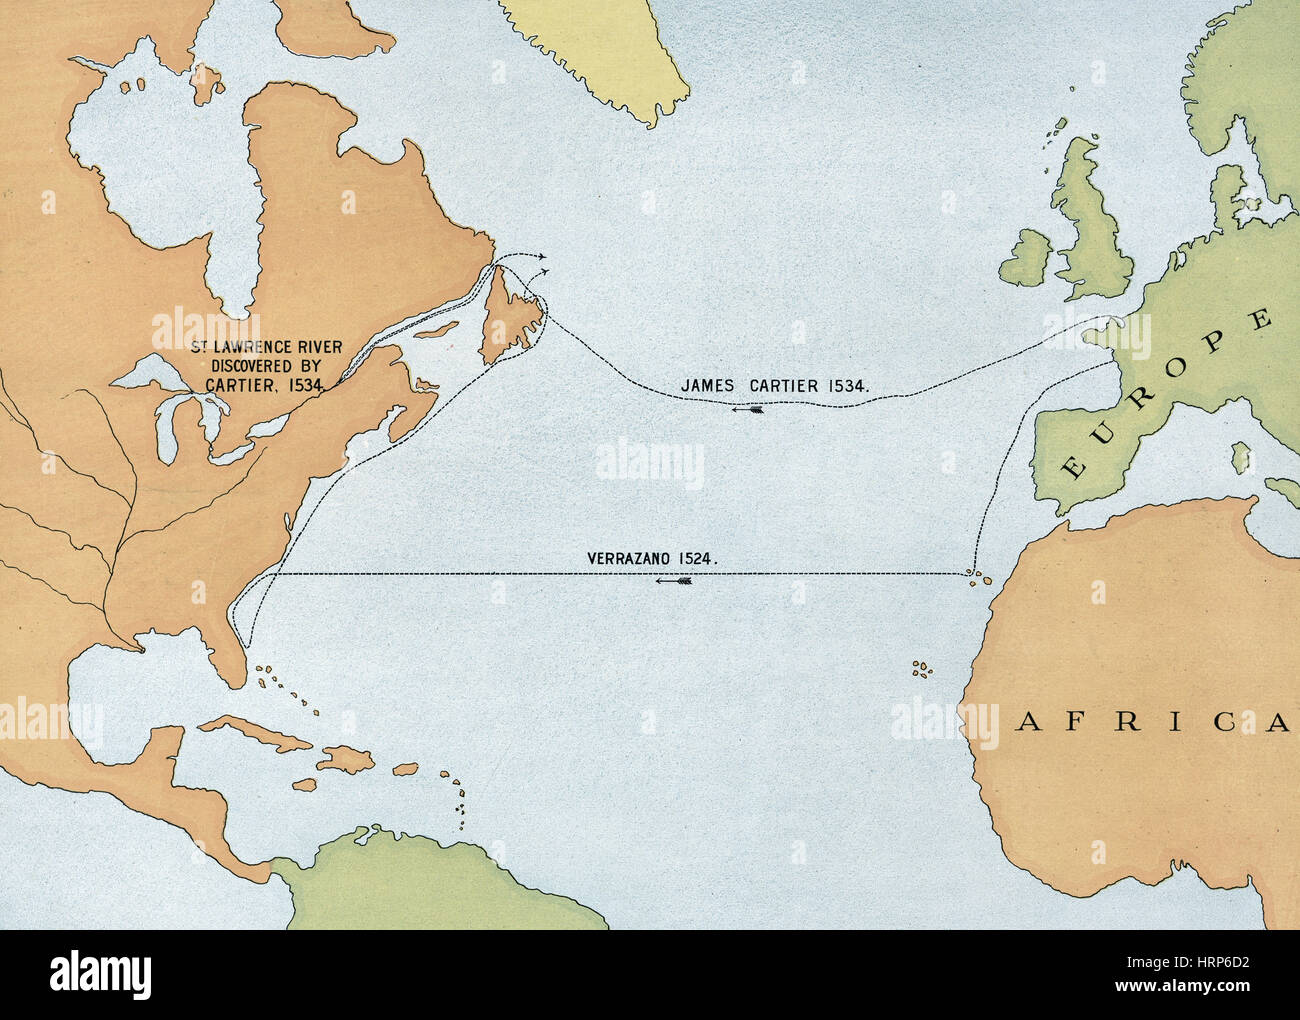 Voyages of Verrazano and Cartier, 1524 and 1534 - Stock Image